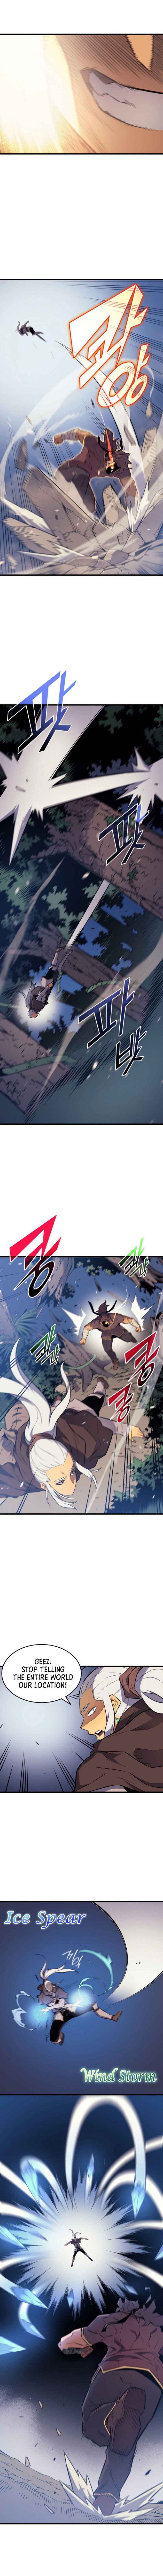 The Great Mage Returns After 4000 Years - chapter 74-eng-li